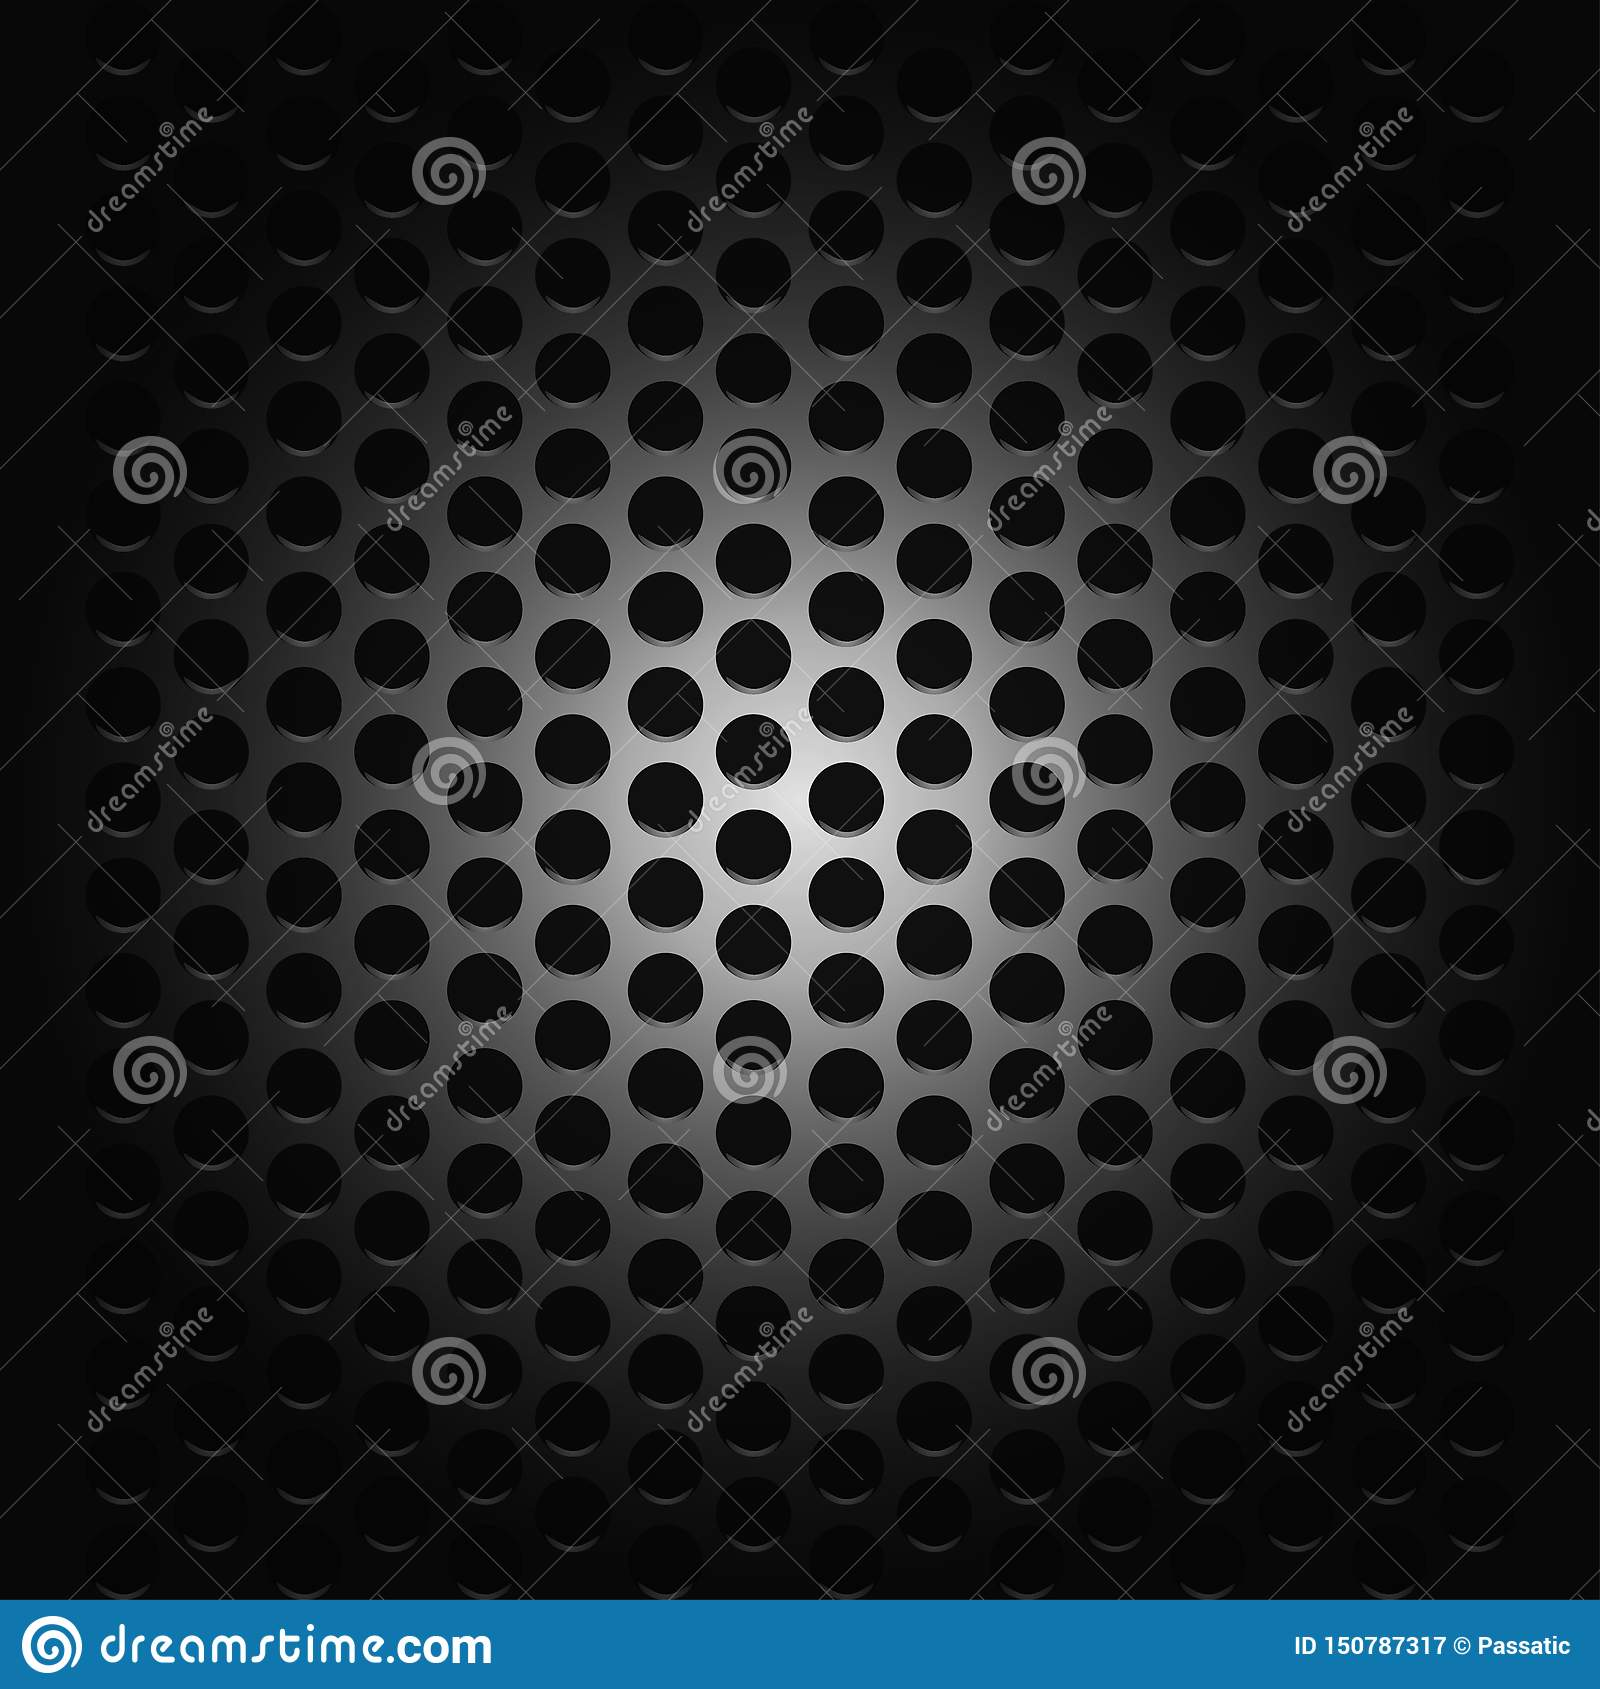 Background with passion for music black grid